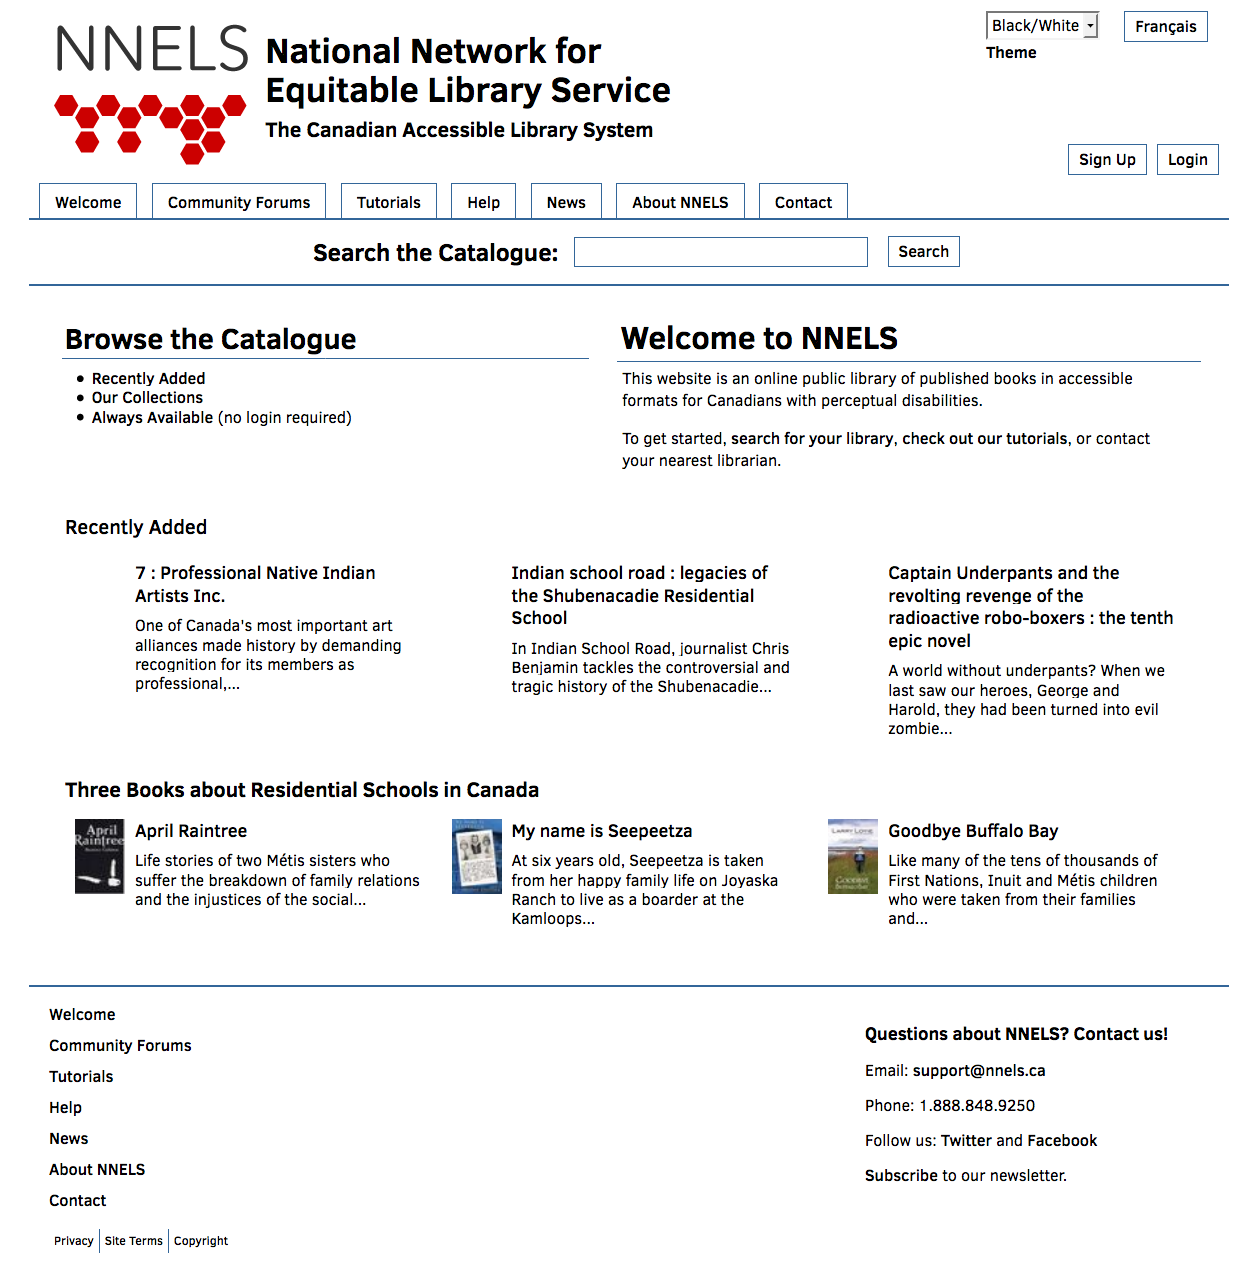 National Network for Equitable Library Service